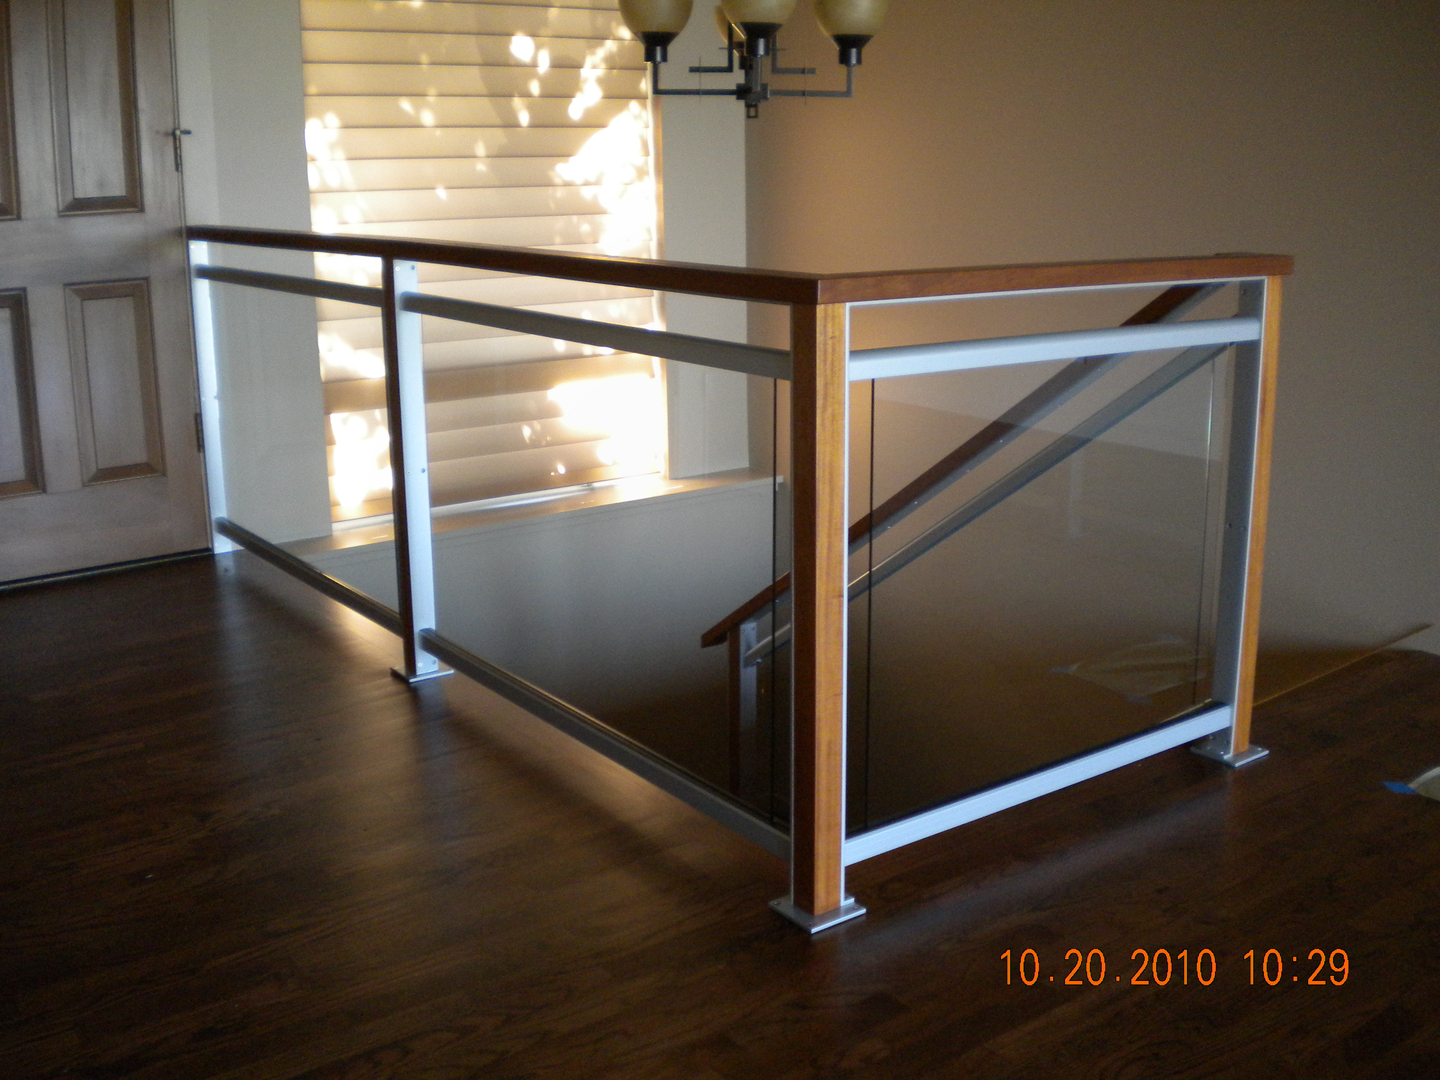 Interior glass railing systems for Interior glass railing designs